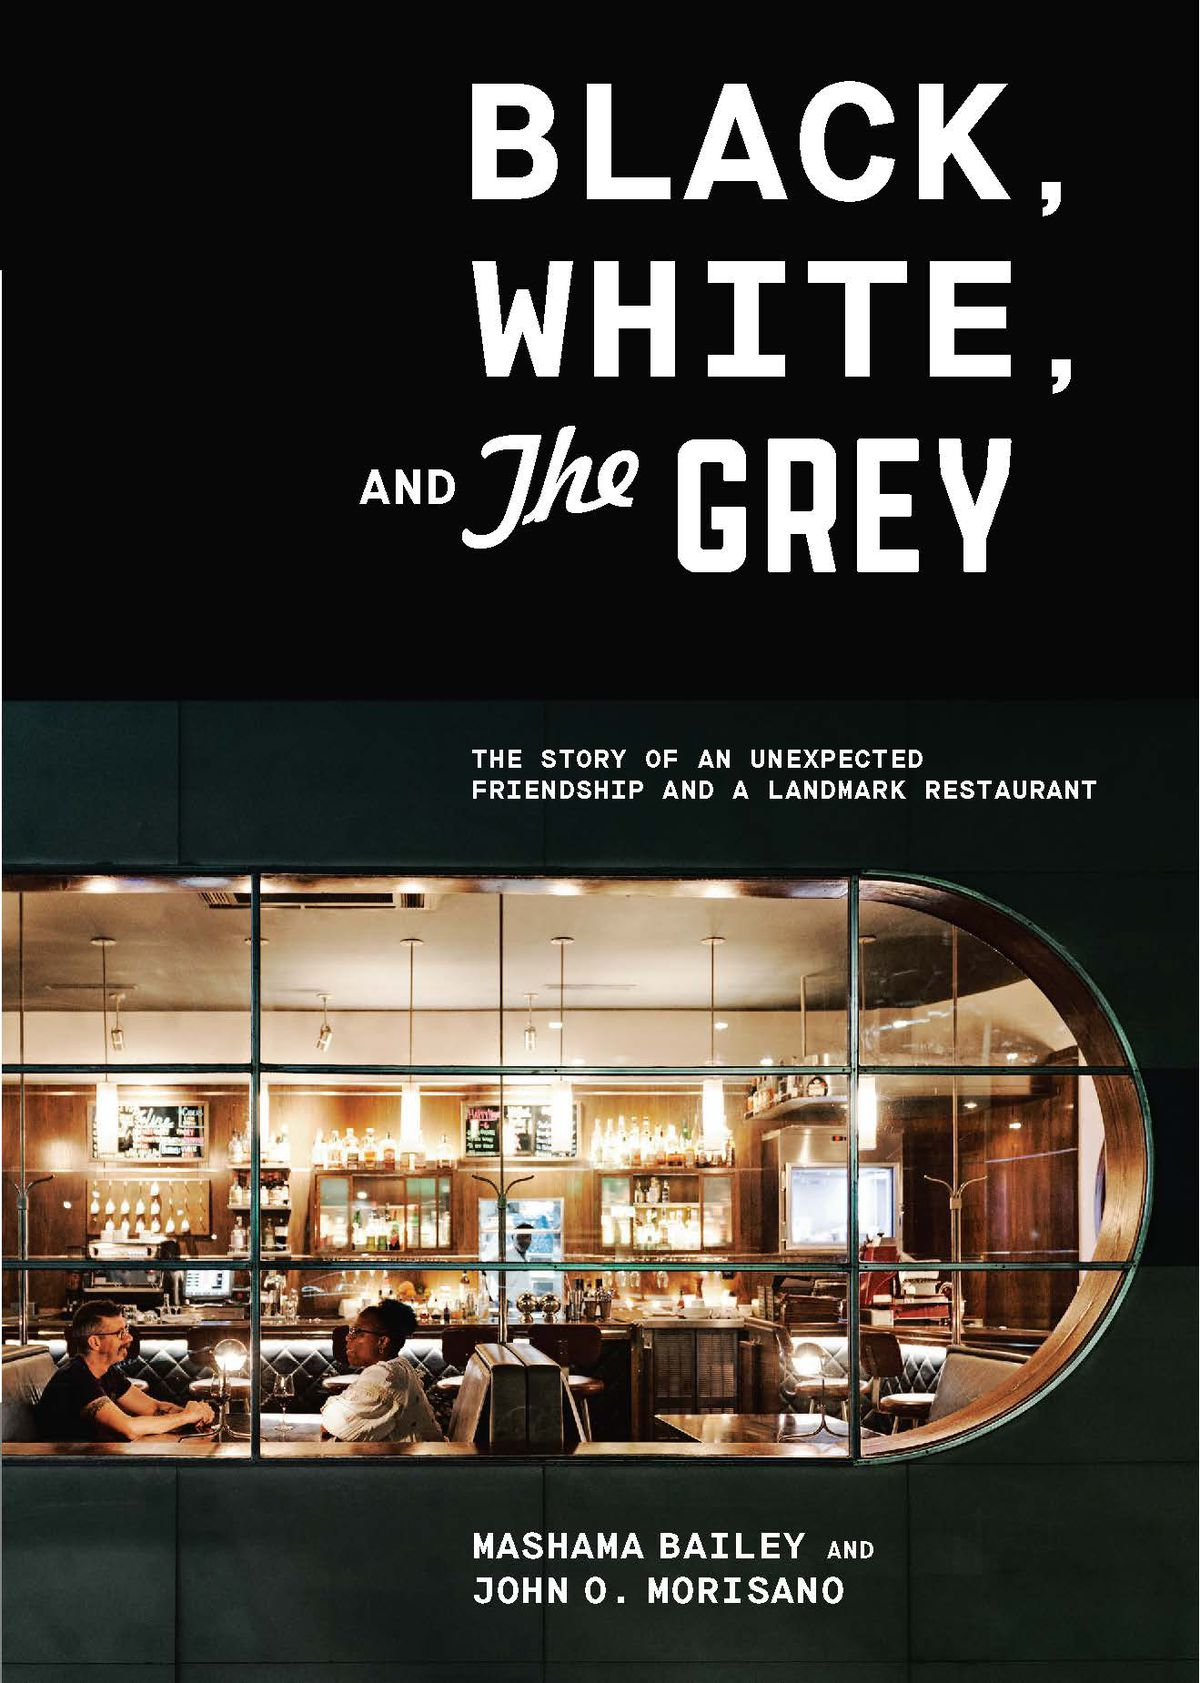 A book cover featuring a photo taken through the window of a well-lit restaurant dining room in which a white man, John O. Morisano, and a black woman, Mashama Bailey, sit at a booth